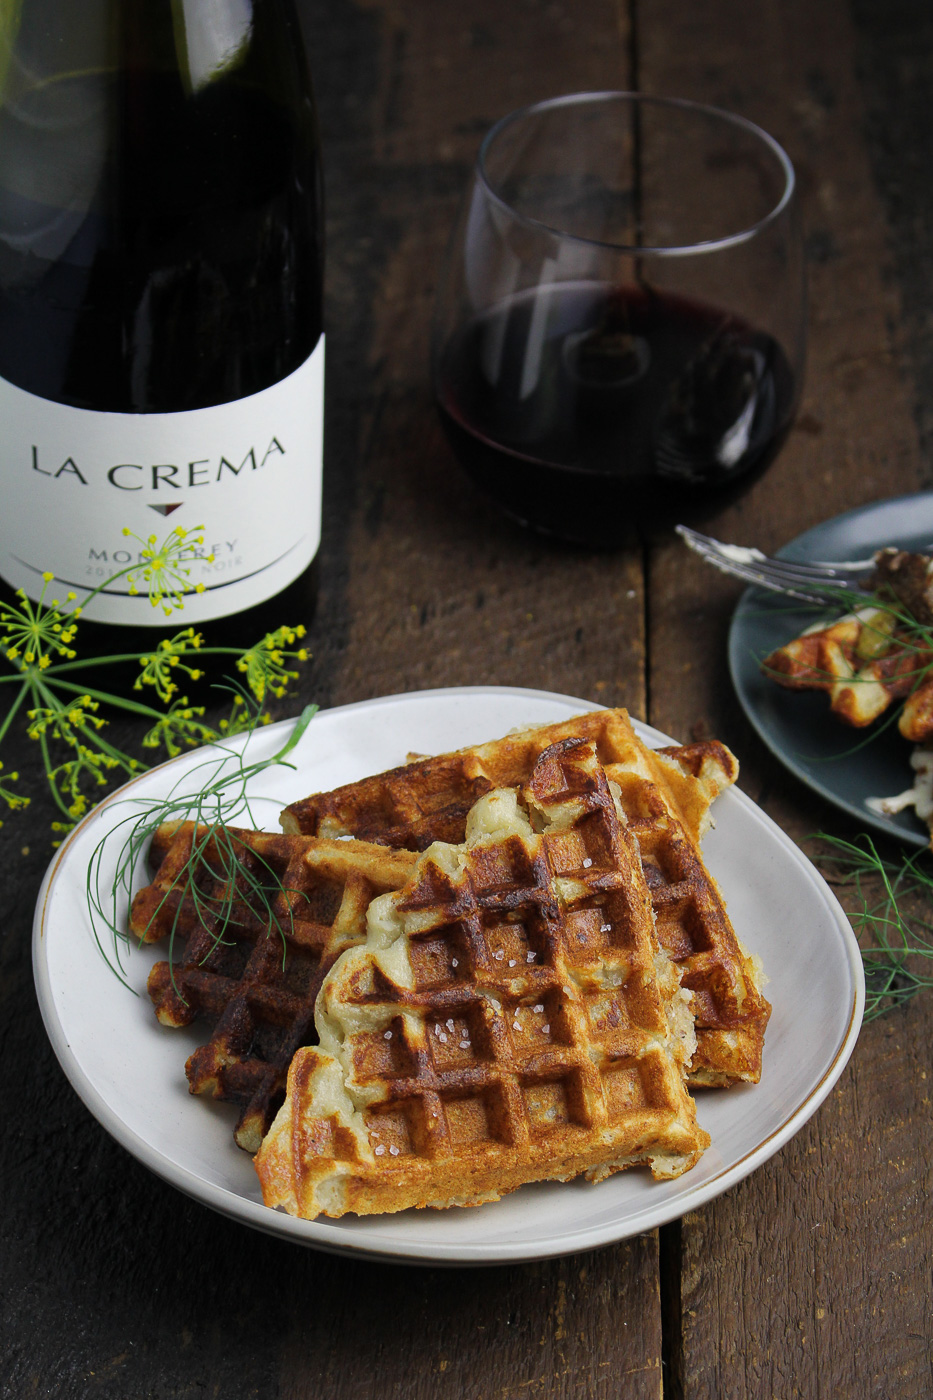 Mashed Potato Waffles {Katie at the Kitchen Door} - sponsored by La Crema Wines